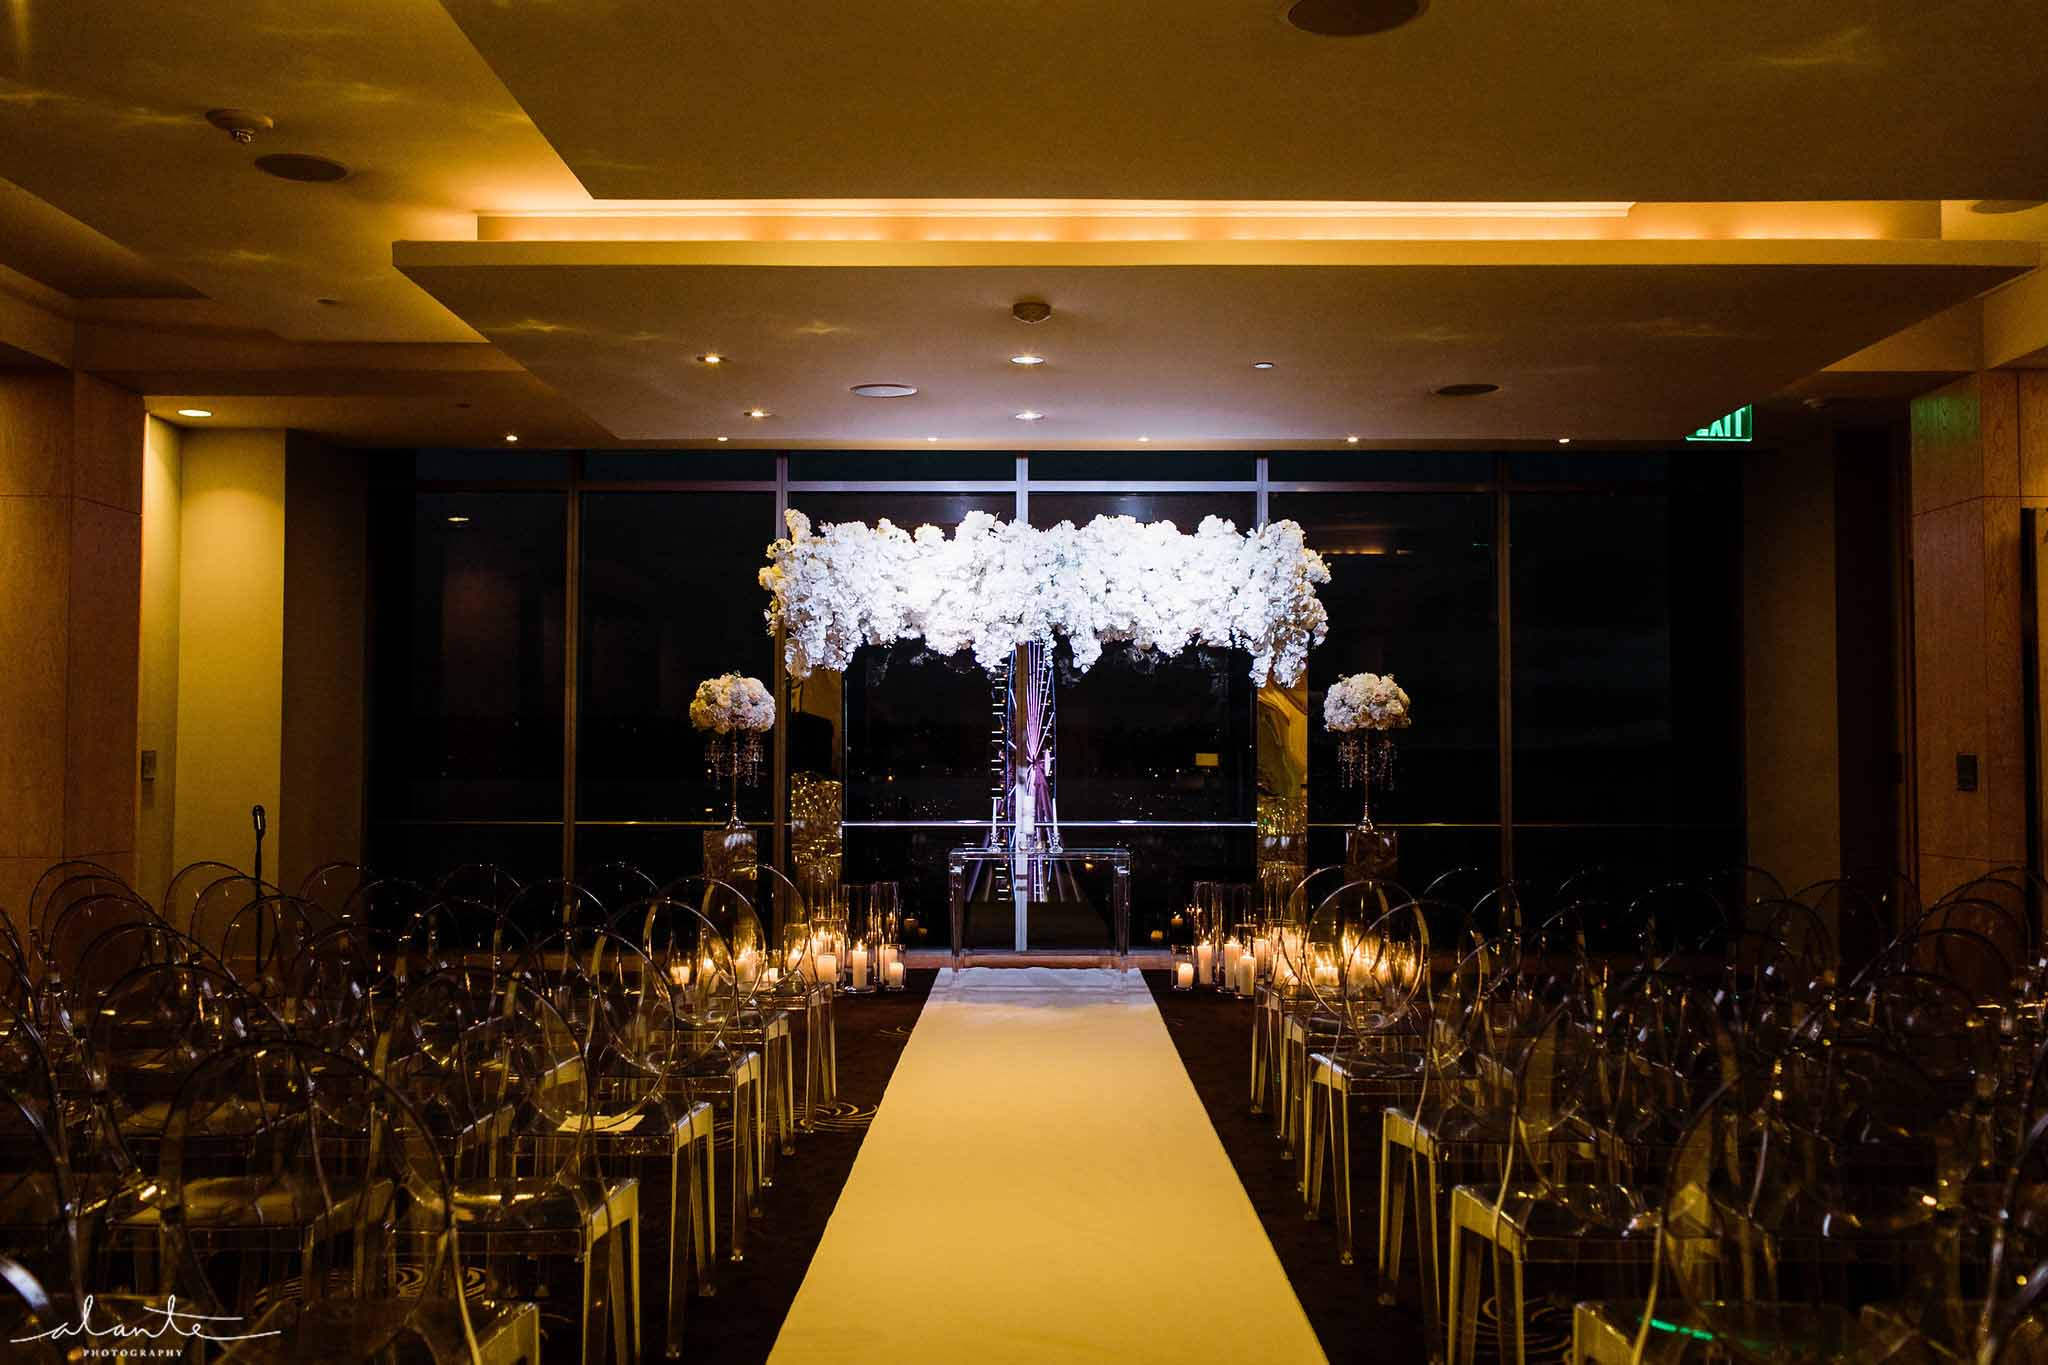 Winter wedding ceremony aisle with orchid wedding arch - Luxury Winter Wedding at the Four Seasons by Flora Nova Design Seattle